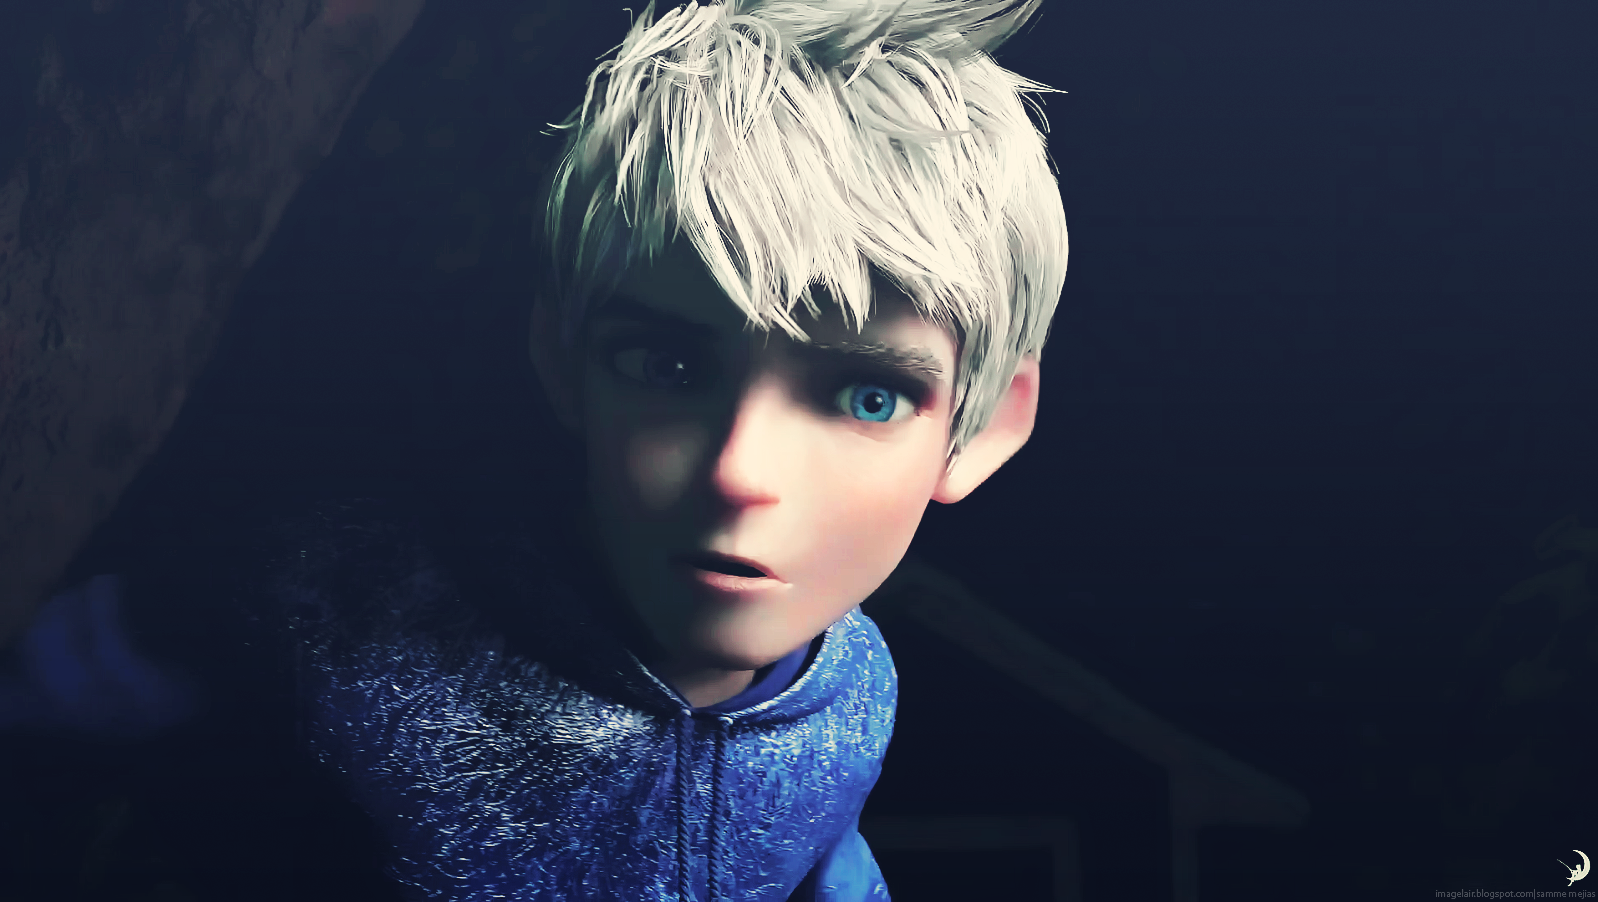 Pictures of jack frost from rise of the guardians Jack Frost Physiology Superpower Wiki FANDOM powered